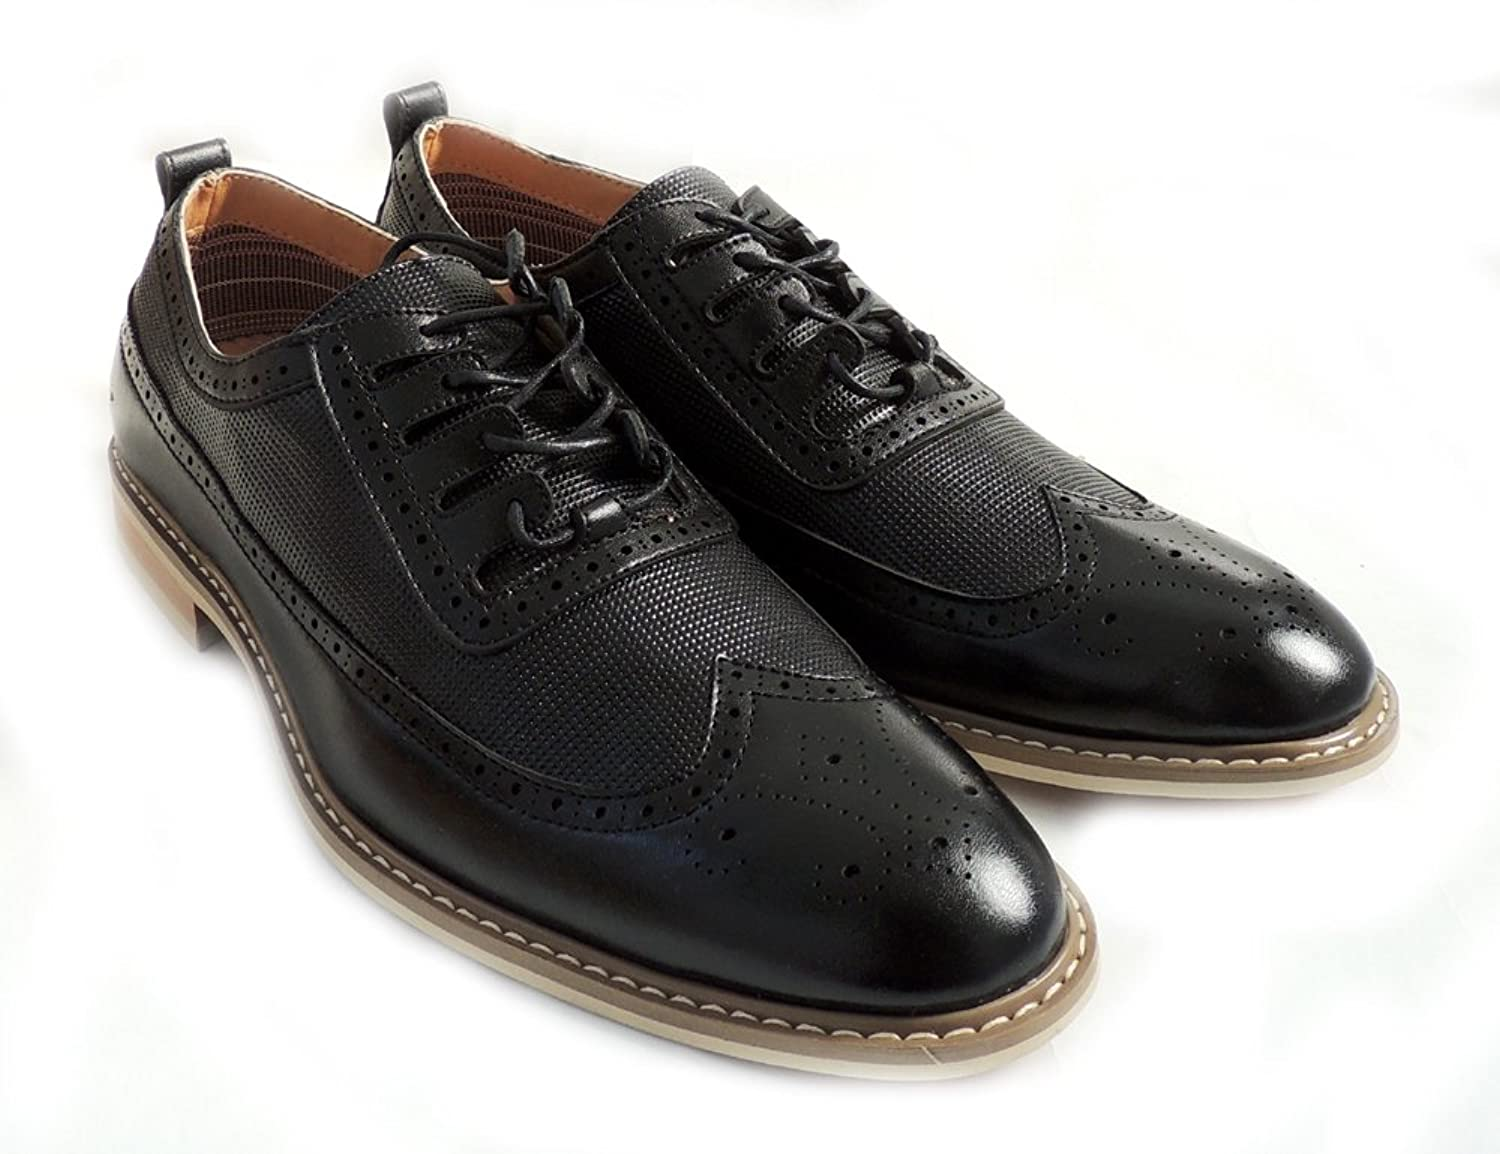 huge selection of 272bf 16d6c NEW FASHIONFERRO ALDO MENS LACE UP OXFORDS WING TIP LEATHER LINED DRESS  SHOES MFA-19278